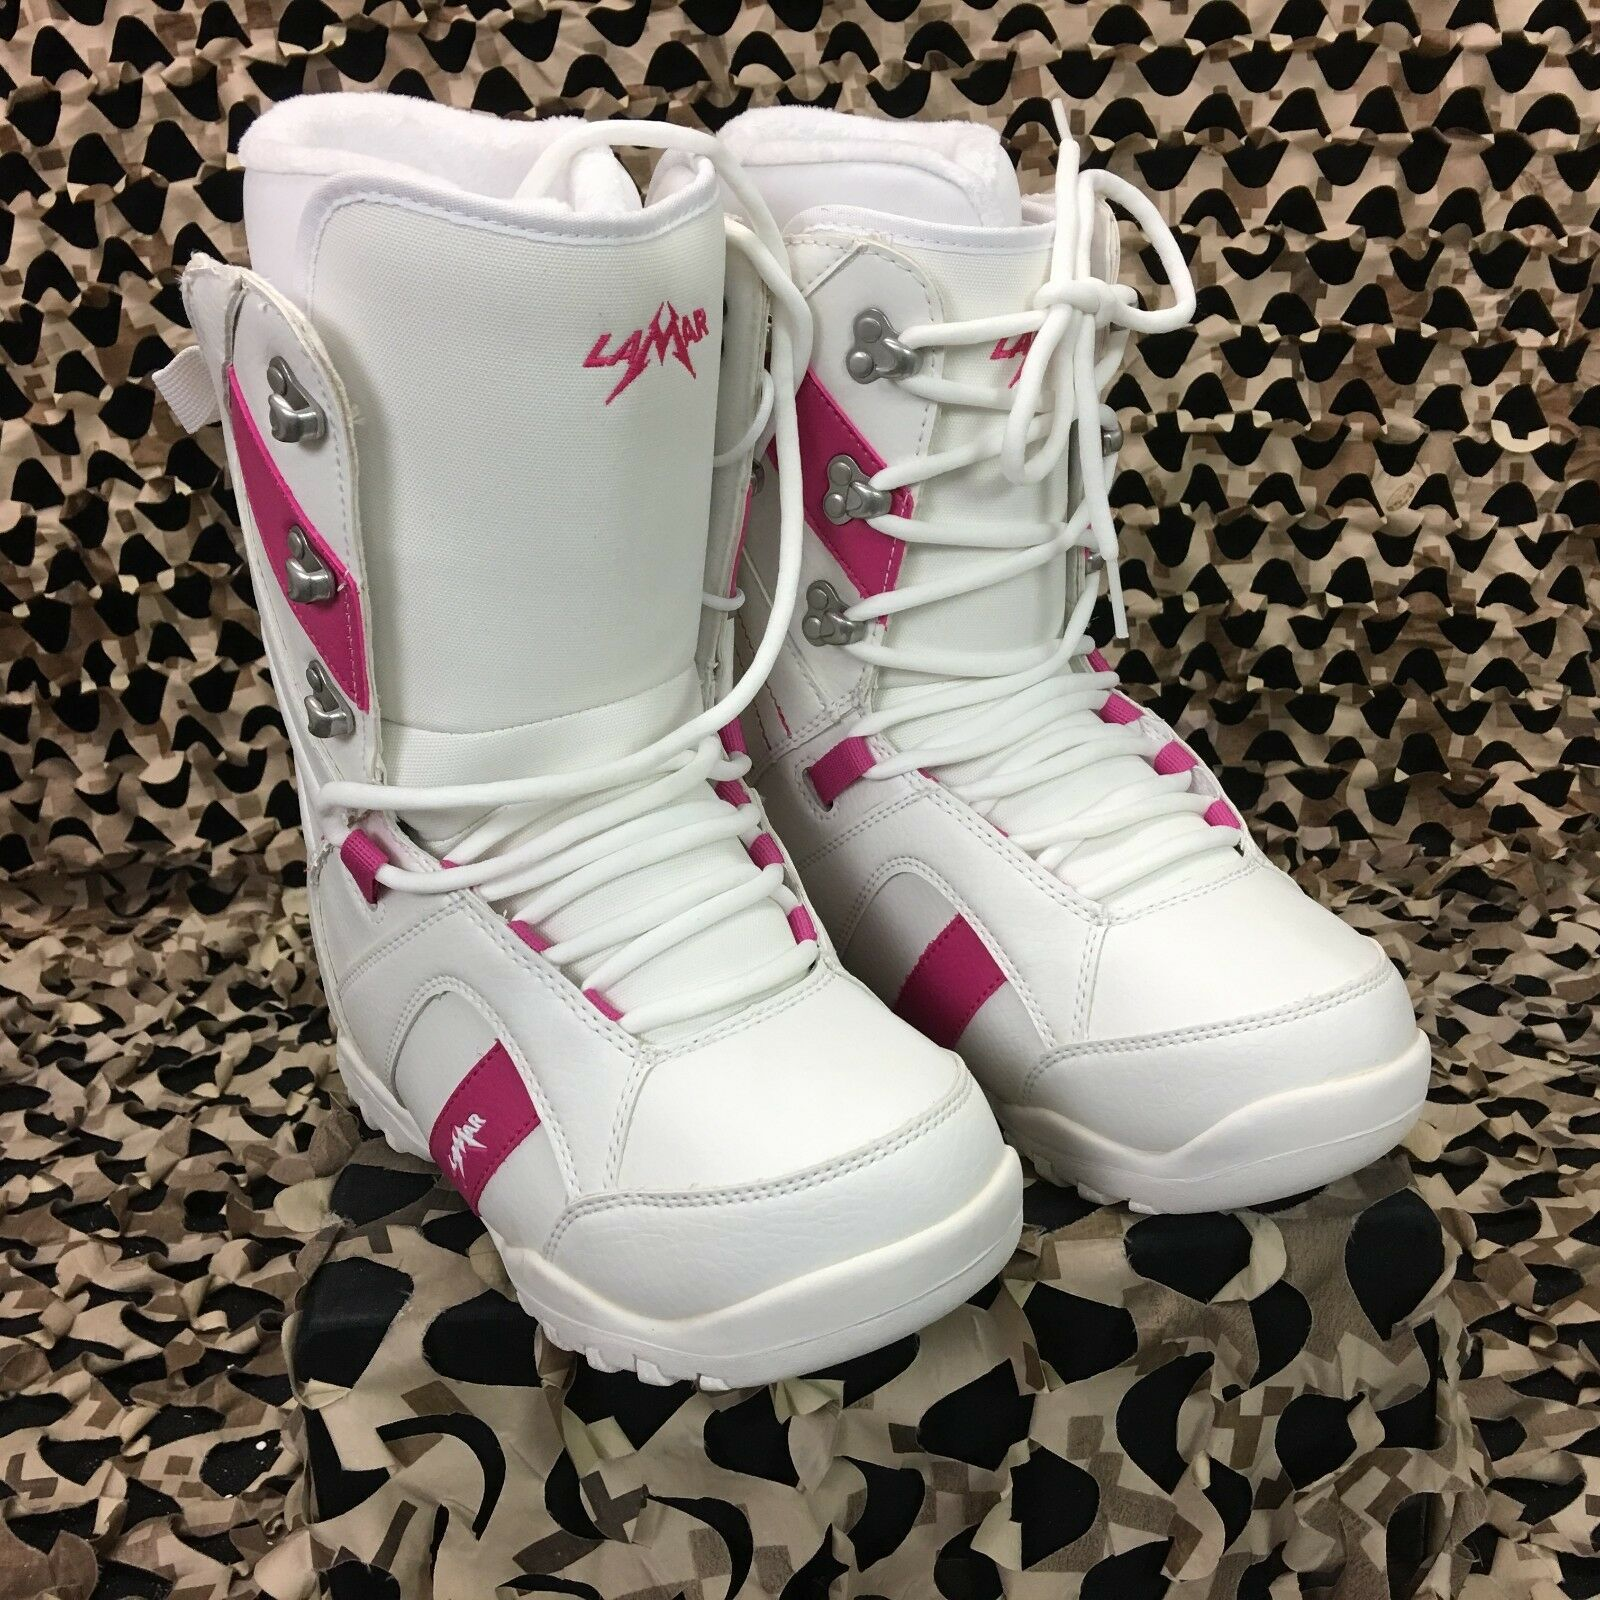 New Lamar Liftie White Snowboard Boots - Women's Size 7